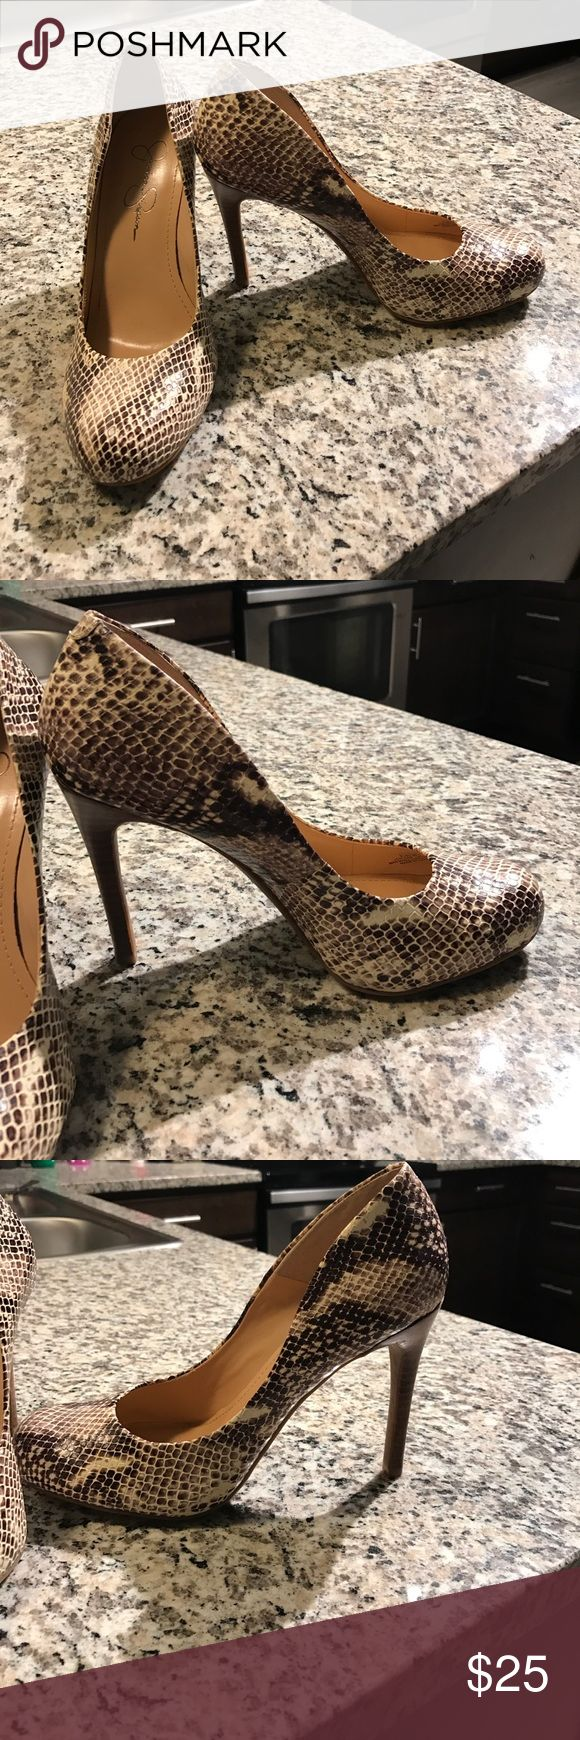 Jessica Simpson Calie Pumps Never worn! Snakeskin print. Perfect height for a heel with an edgy flare. Jessica Simpson Shoes Heels